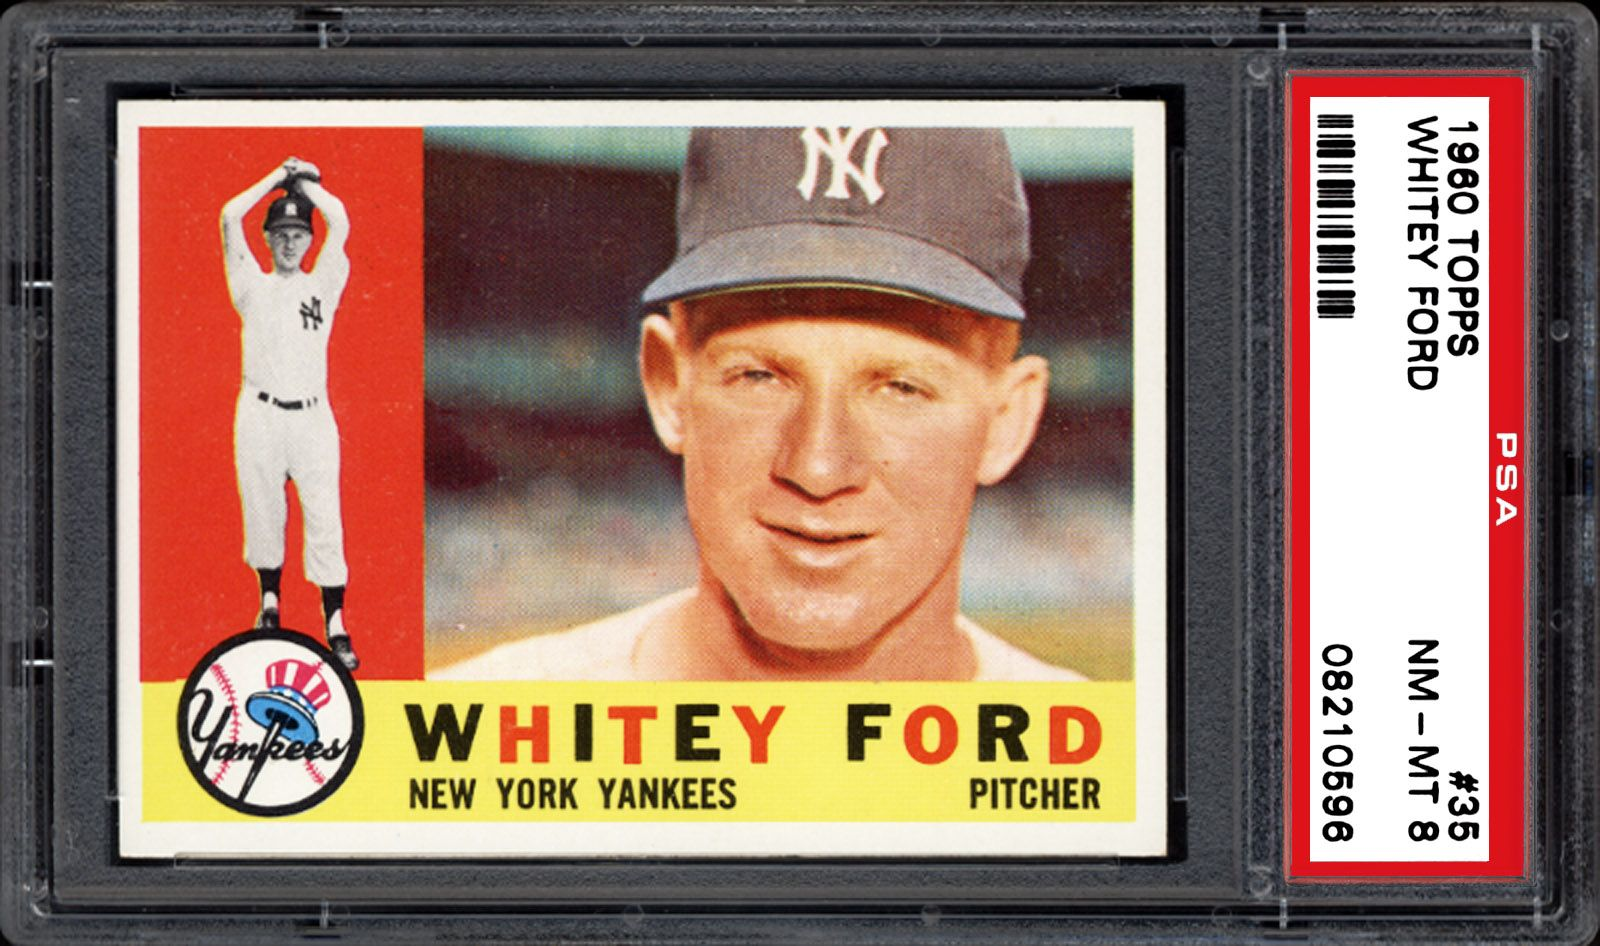 1960 Topps Whitey Ford Psa Cardfacts